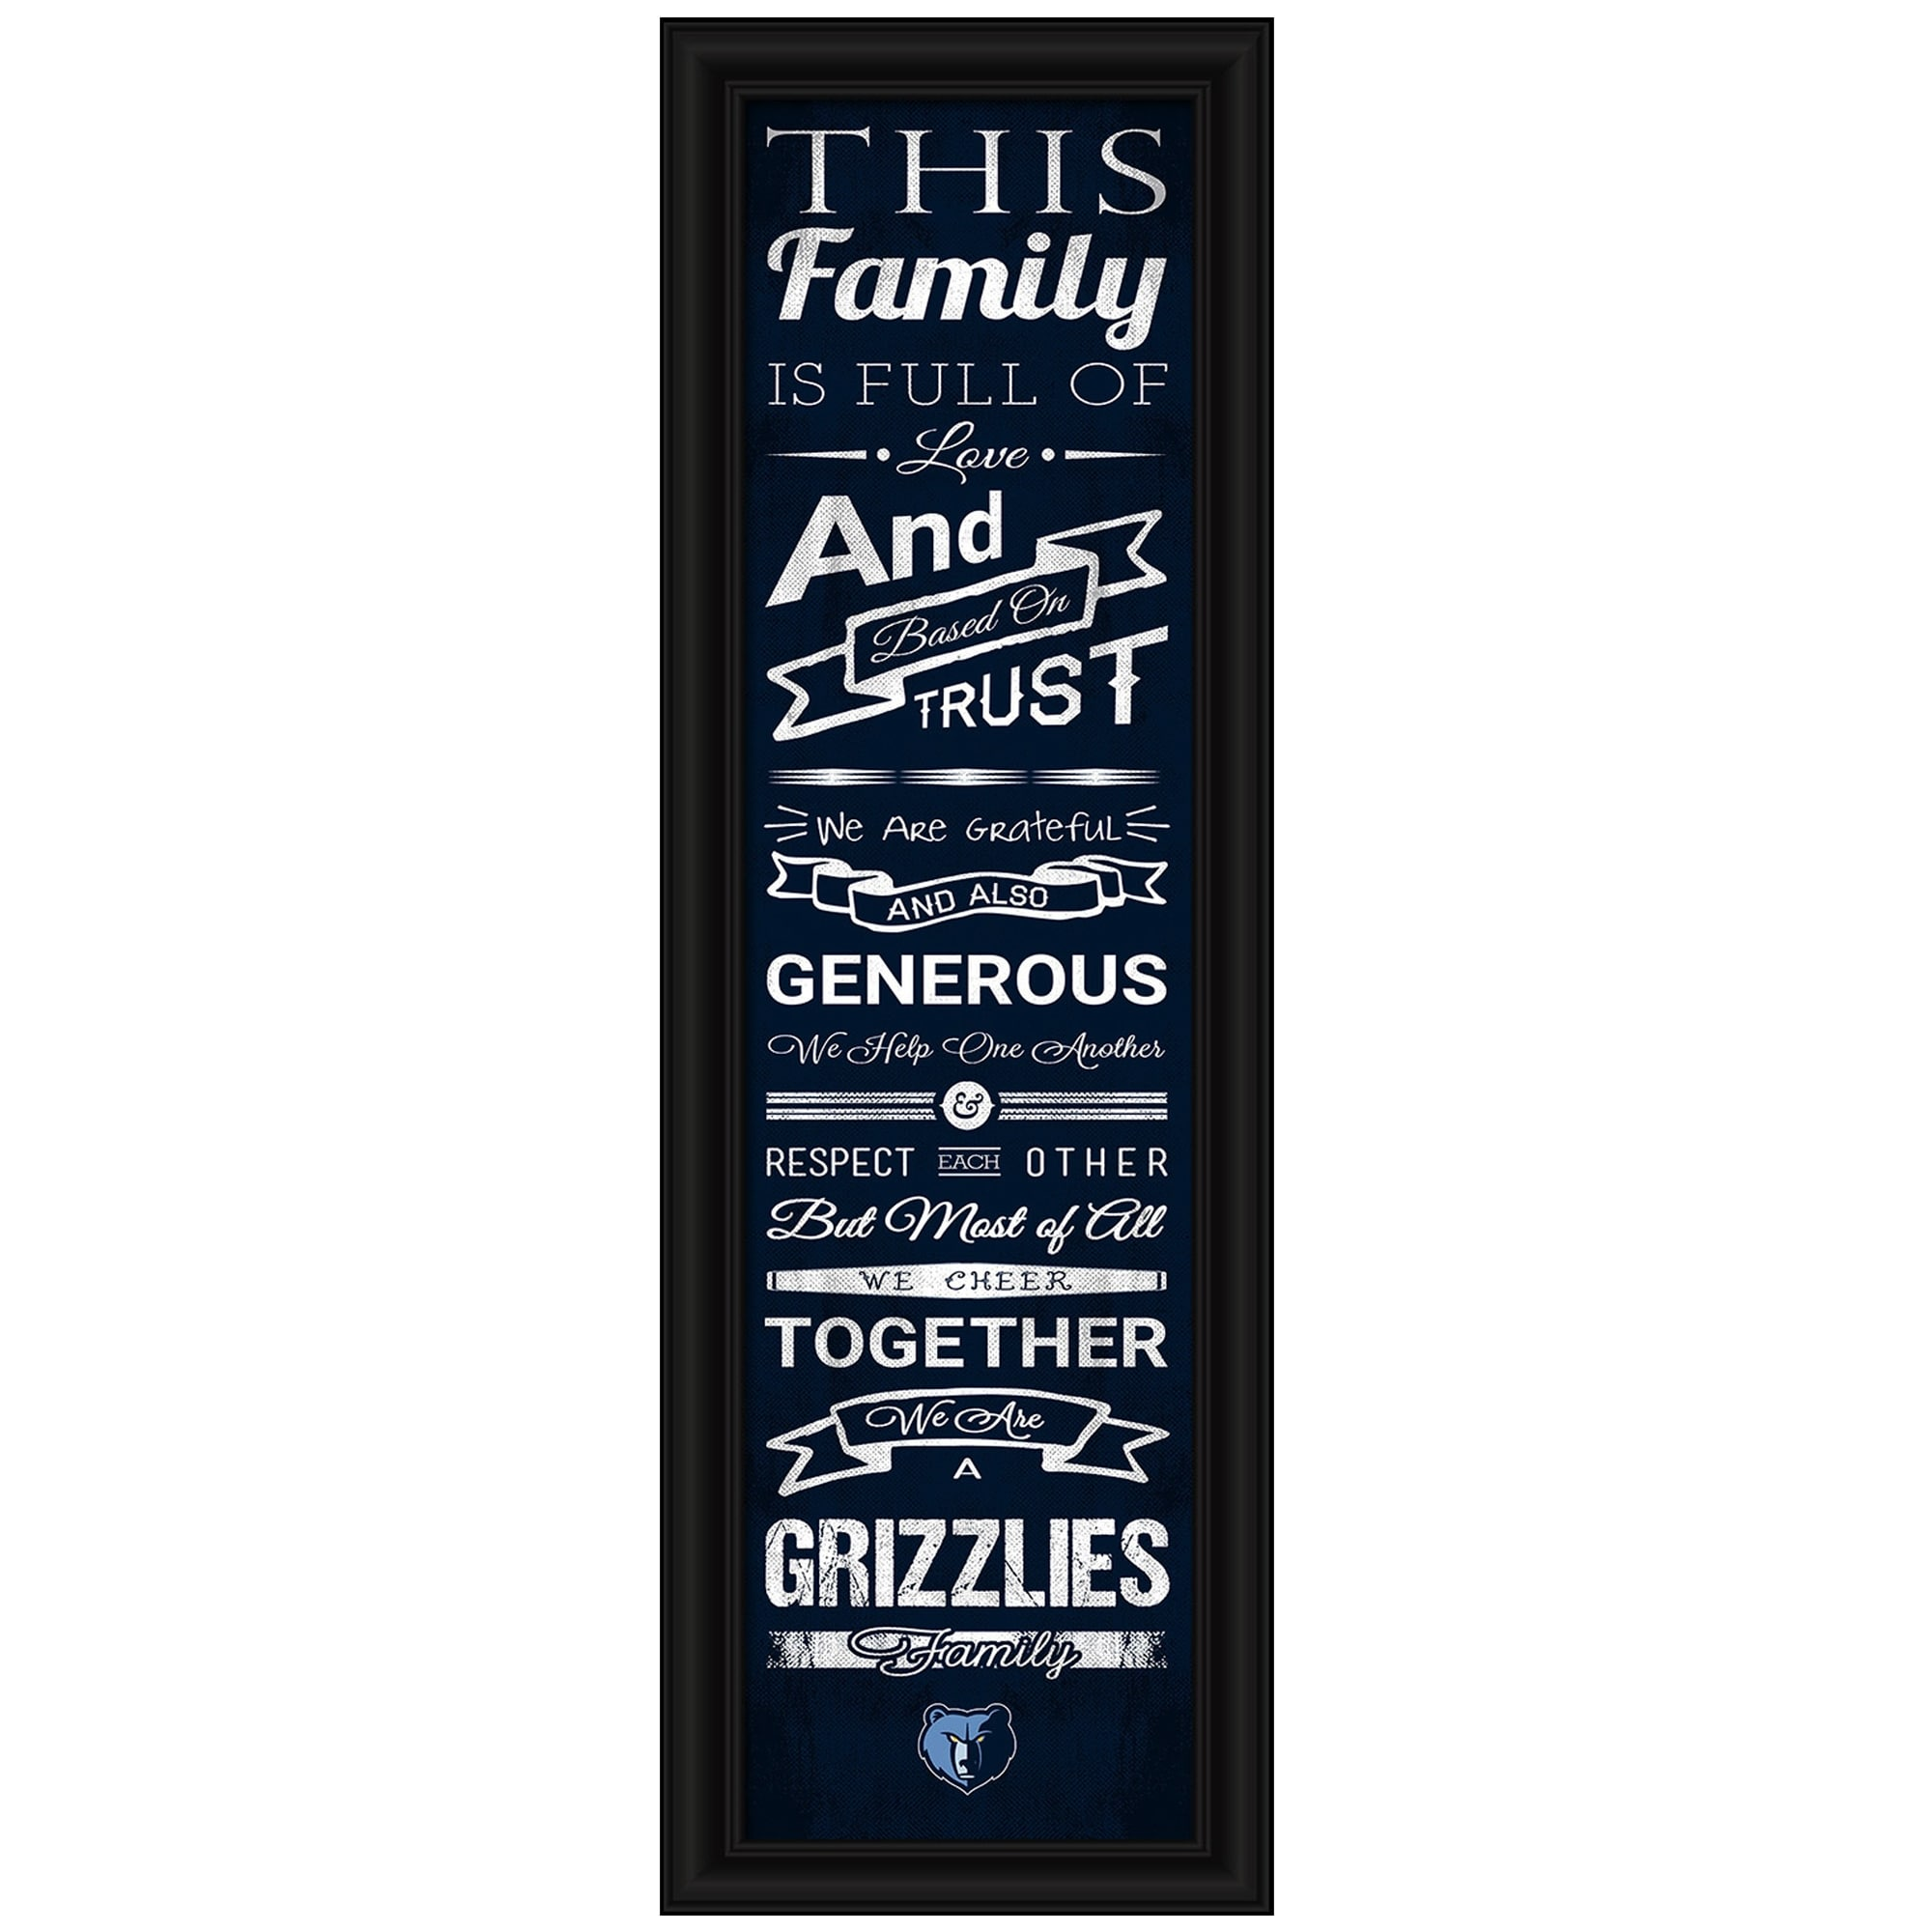 Memphis Grizzlies Crackle Family Cheer Framed Art